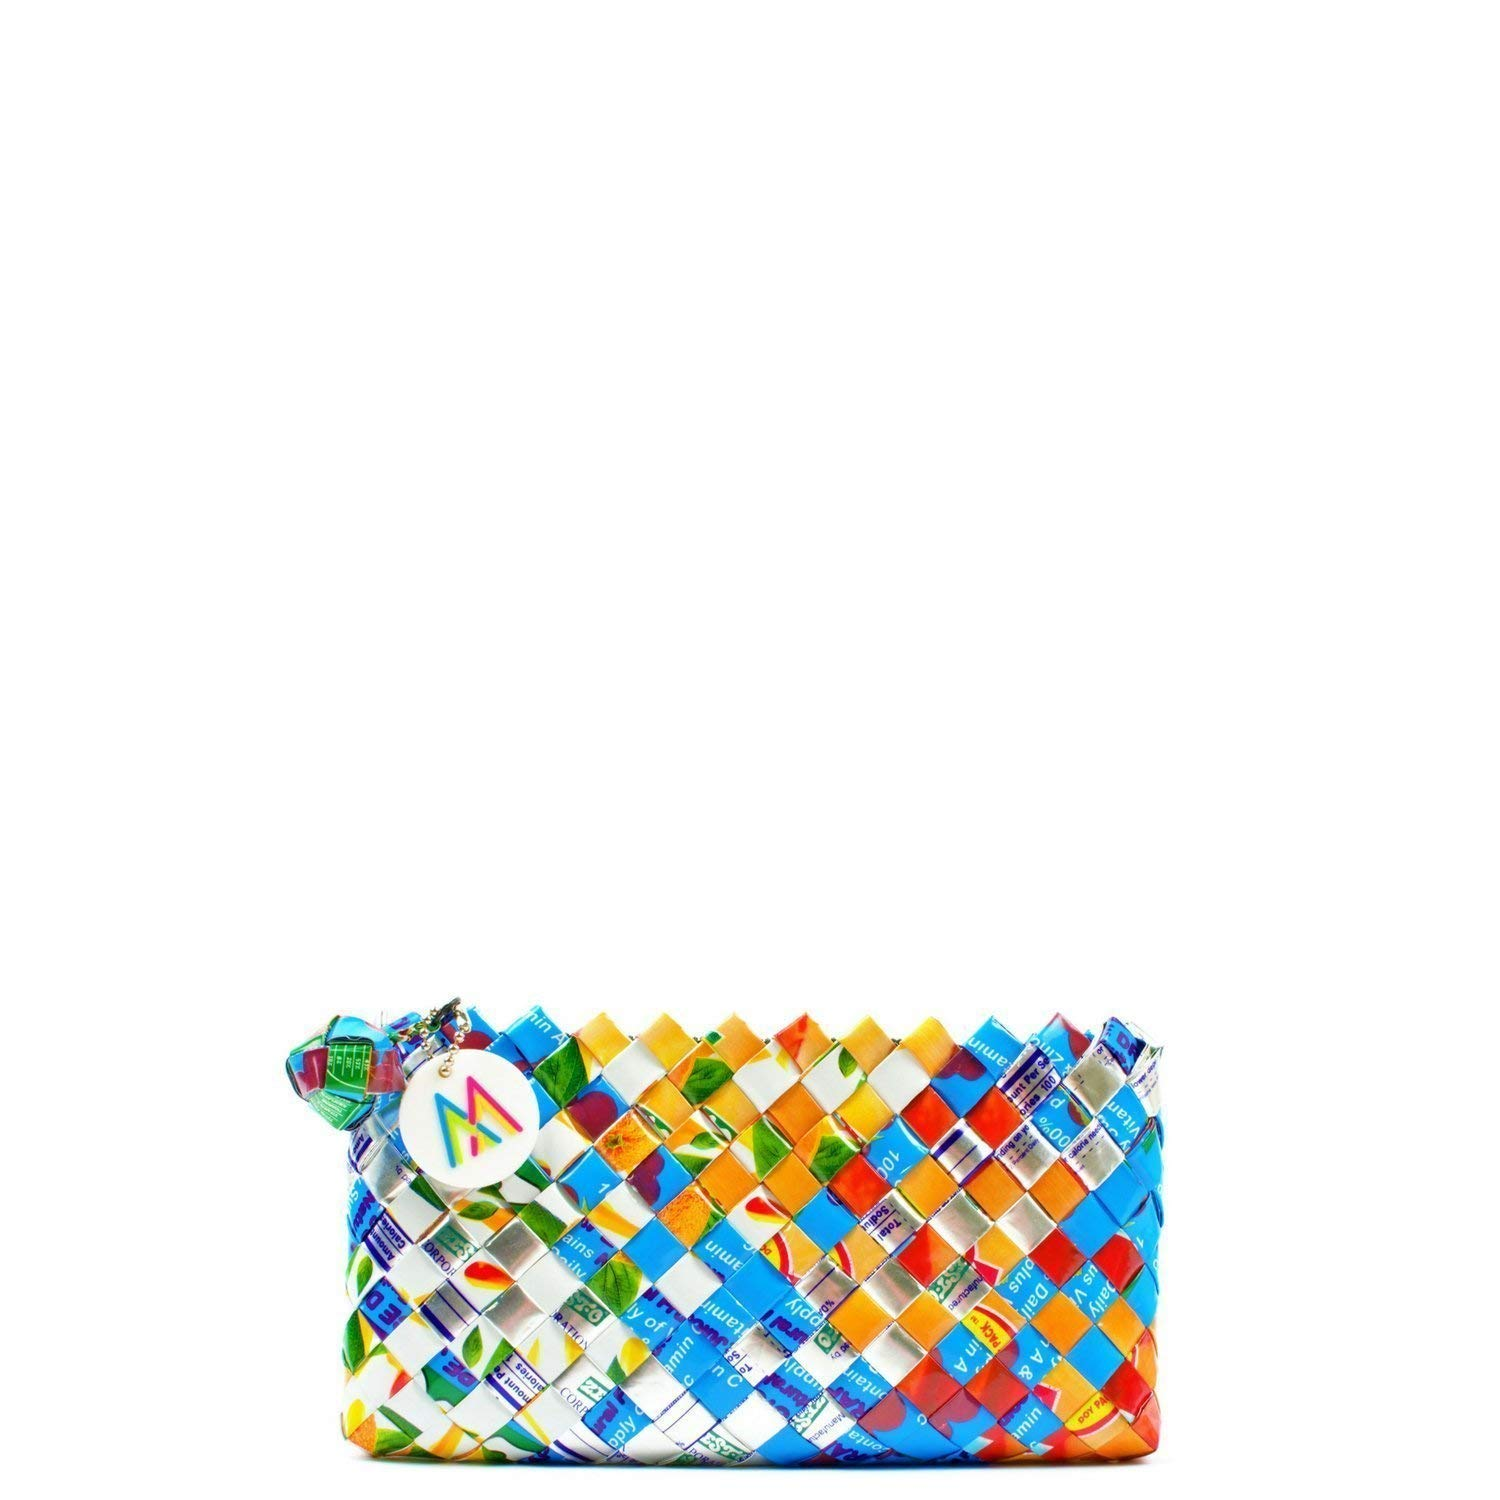 Handmade, Eco-friendly Mini Clutch Woven from Upcycled Materials